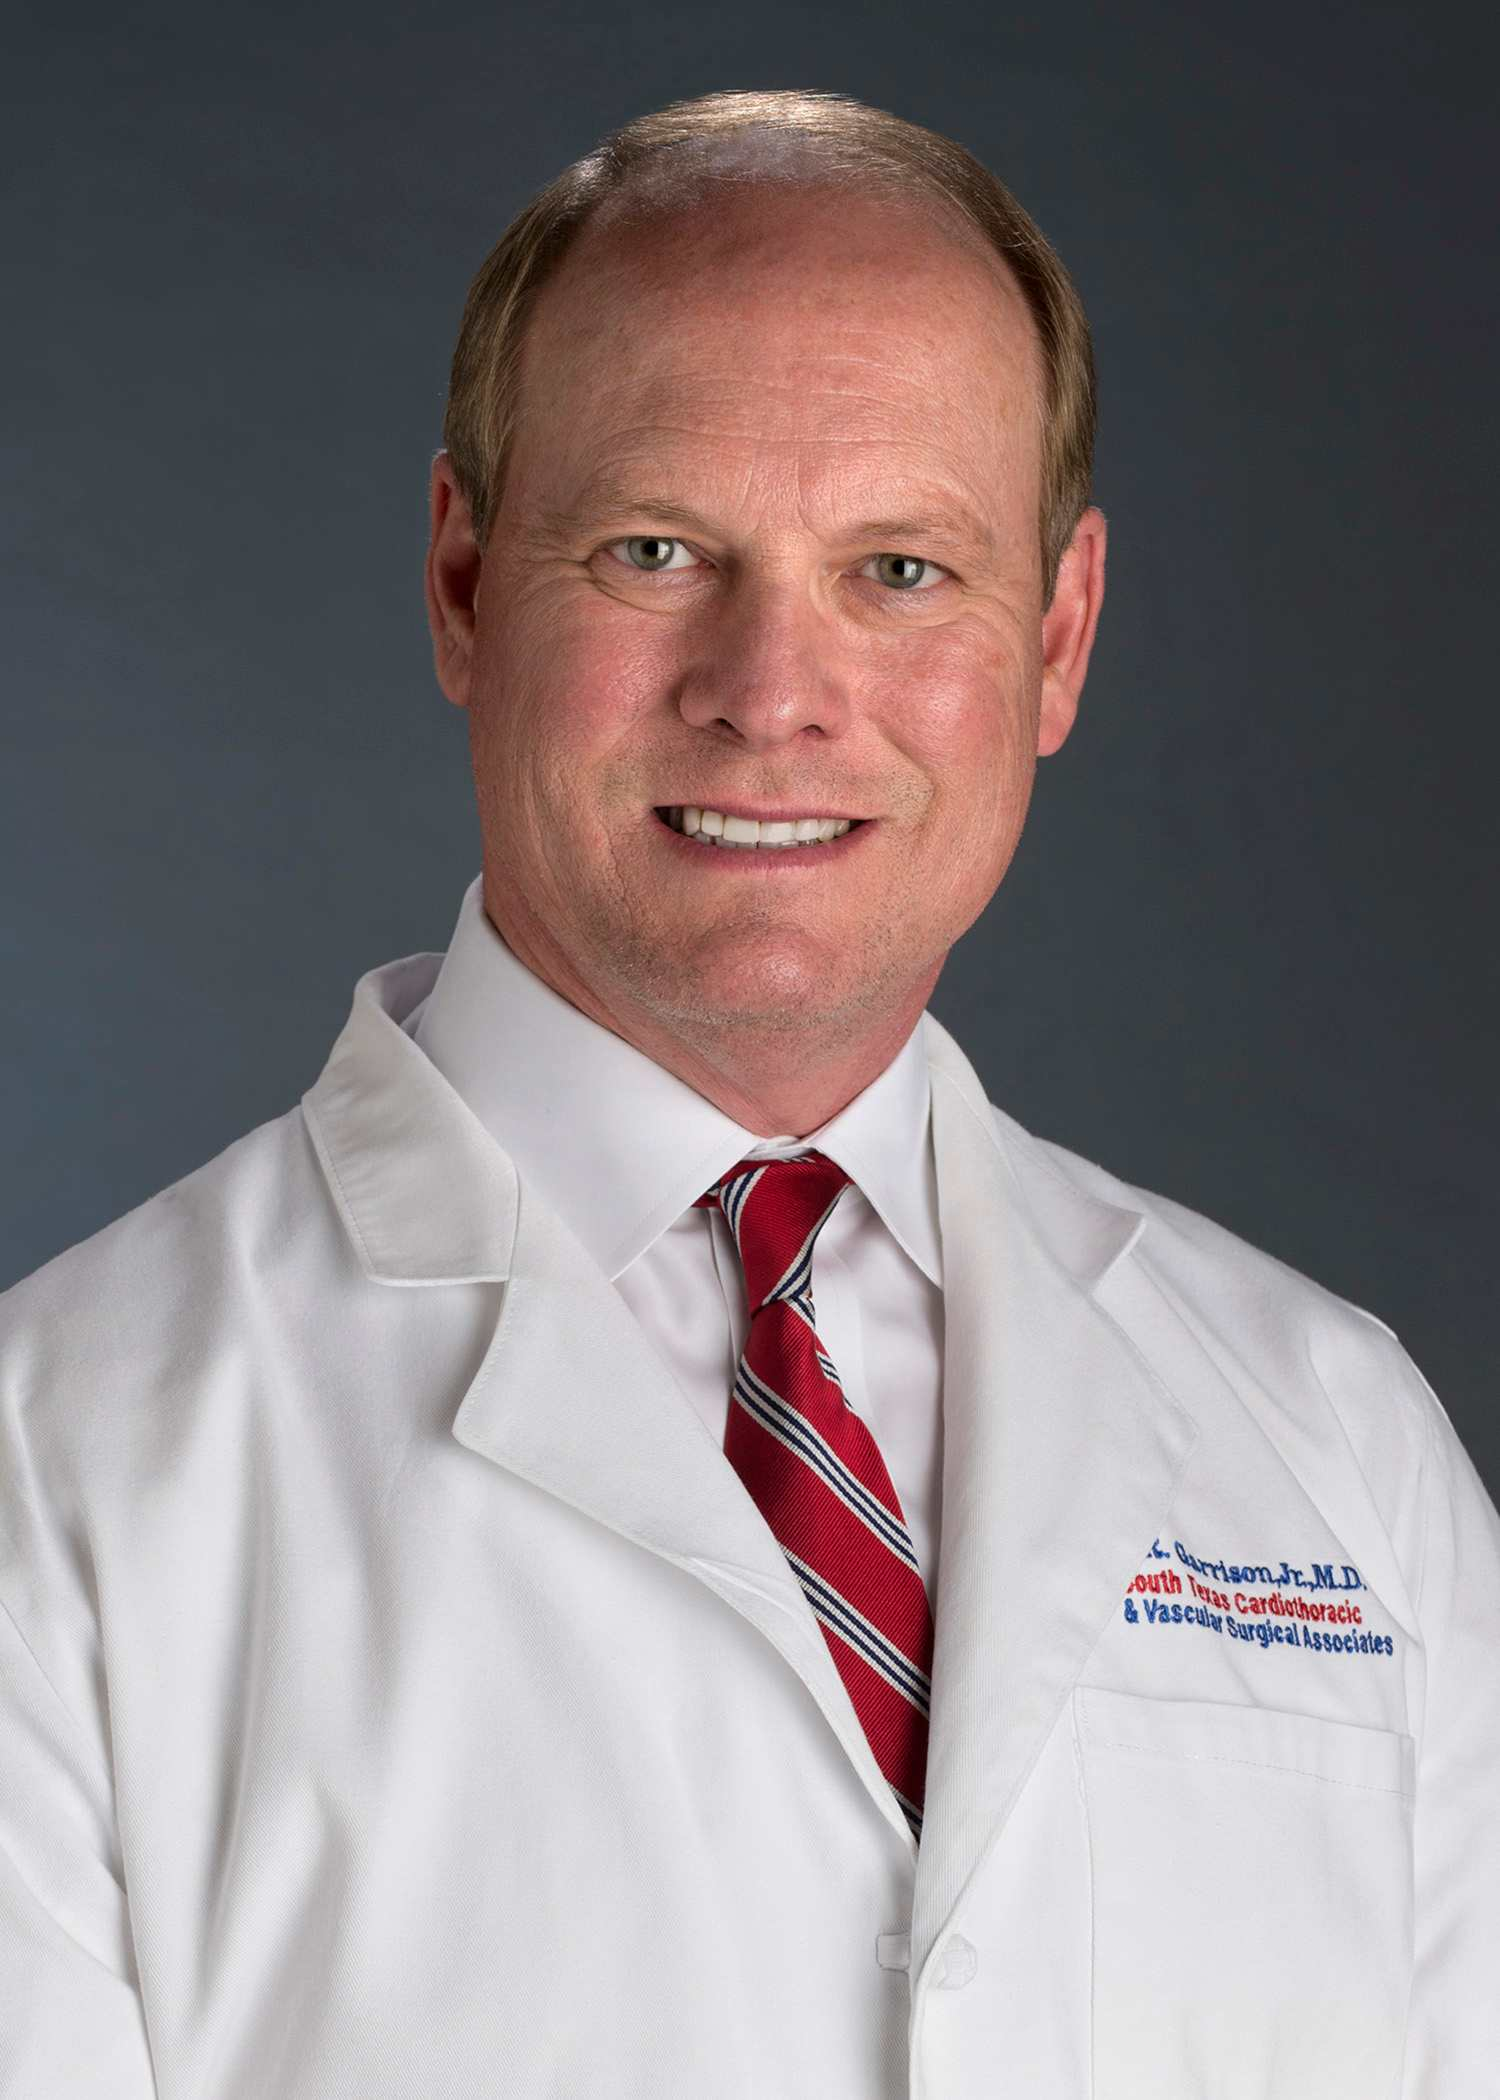 South Texas heart Surgeons - South Texas Cardiothoracic and